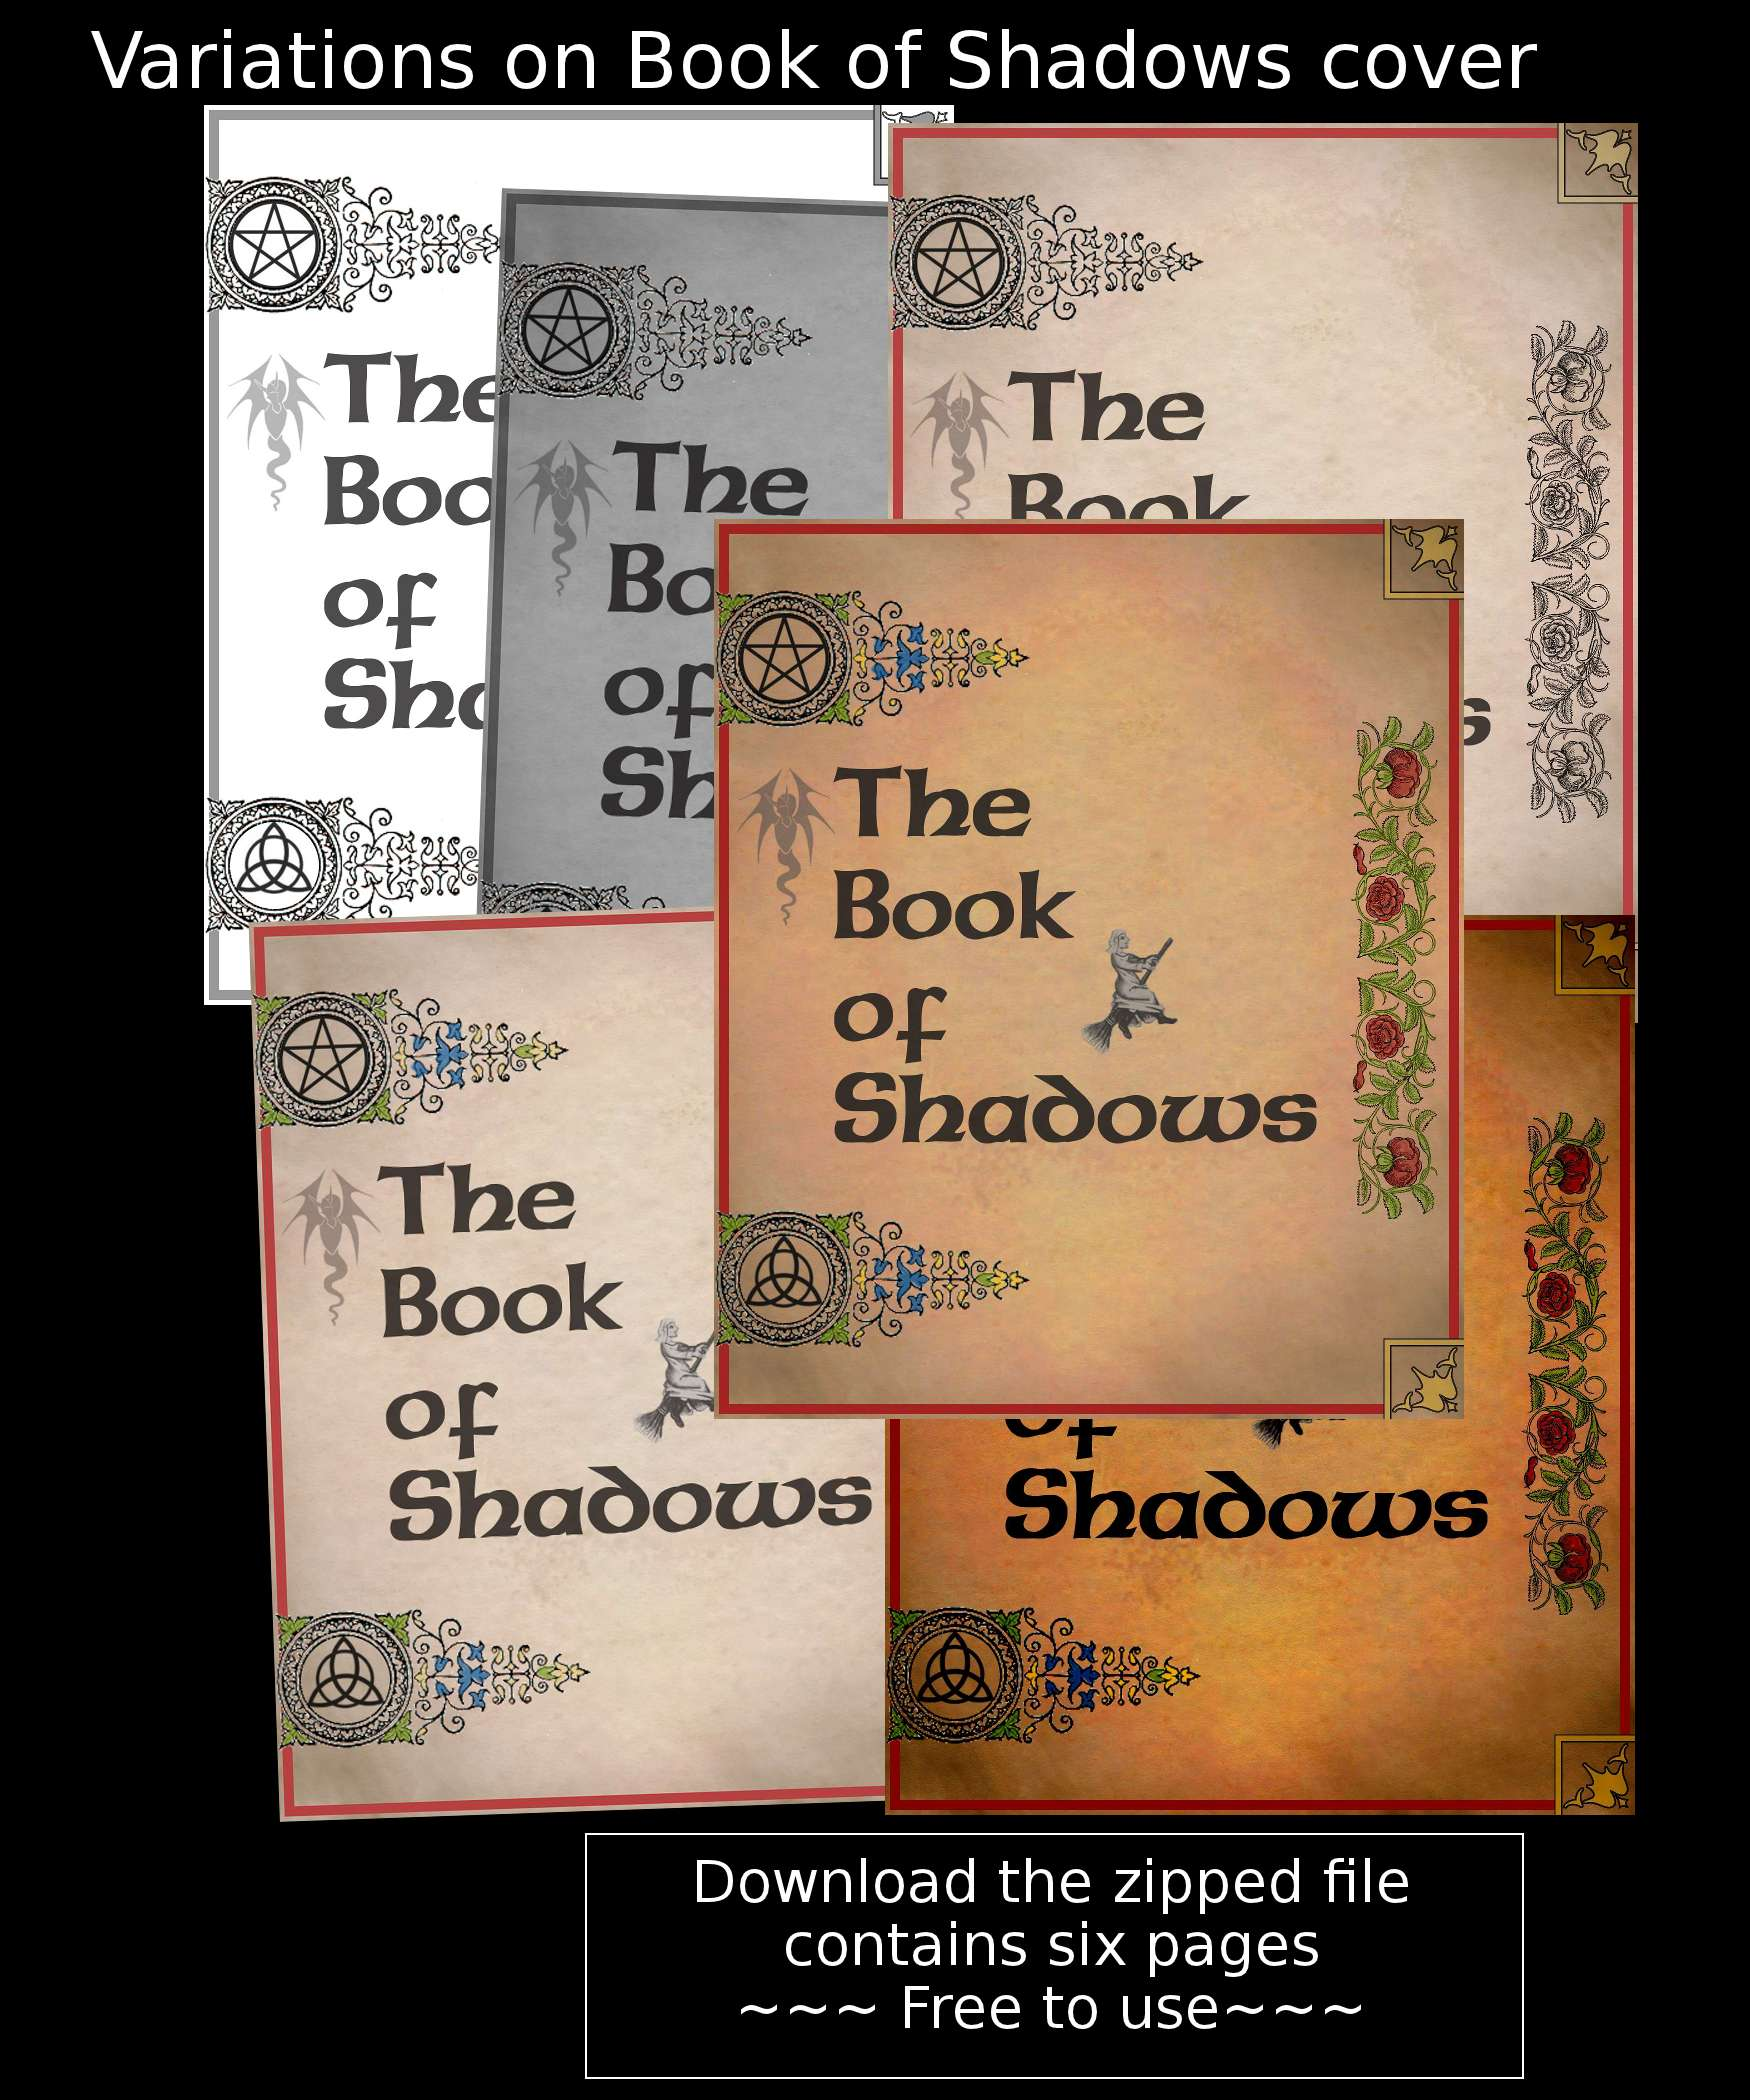 Book of Shadows covers